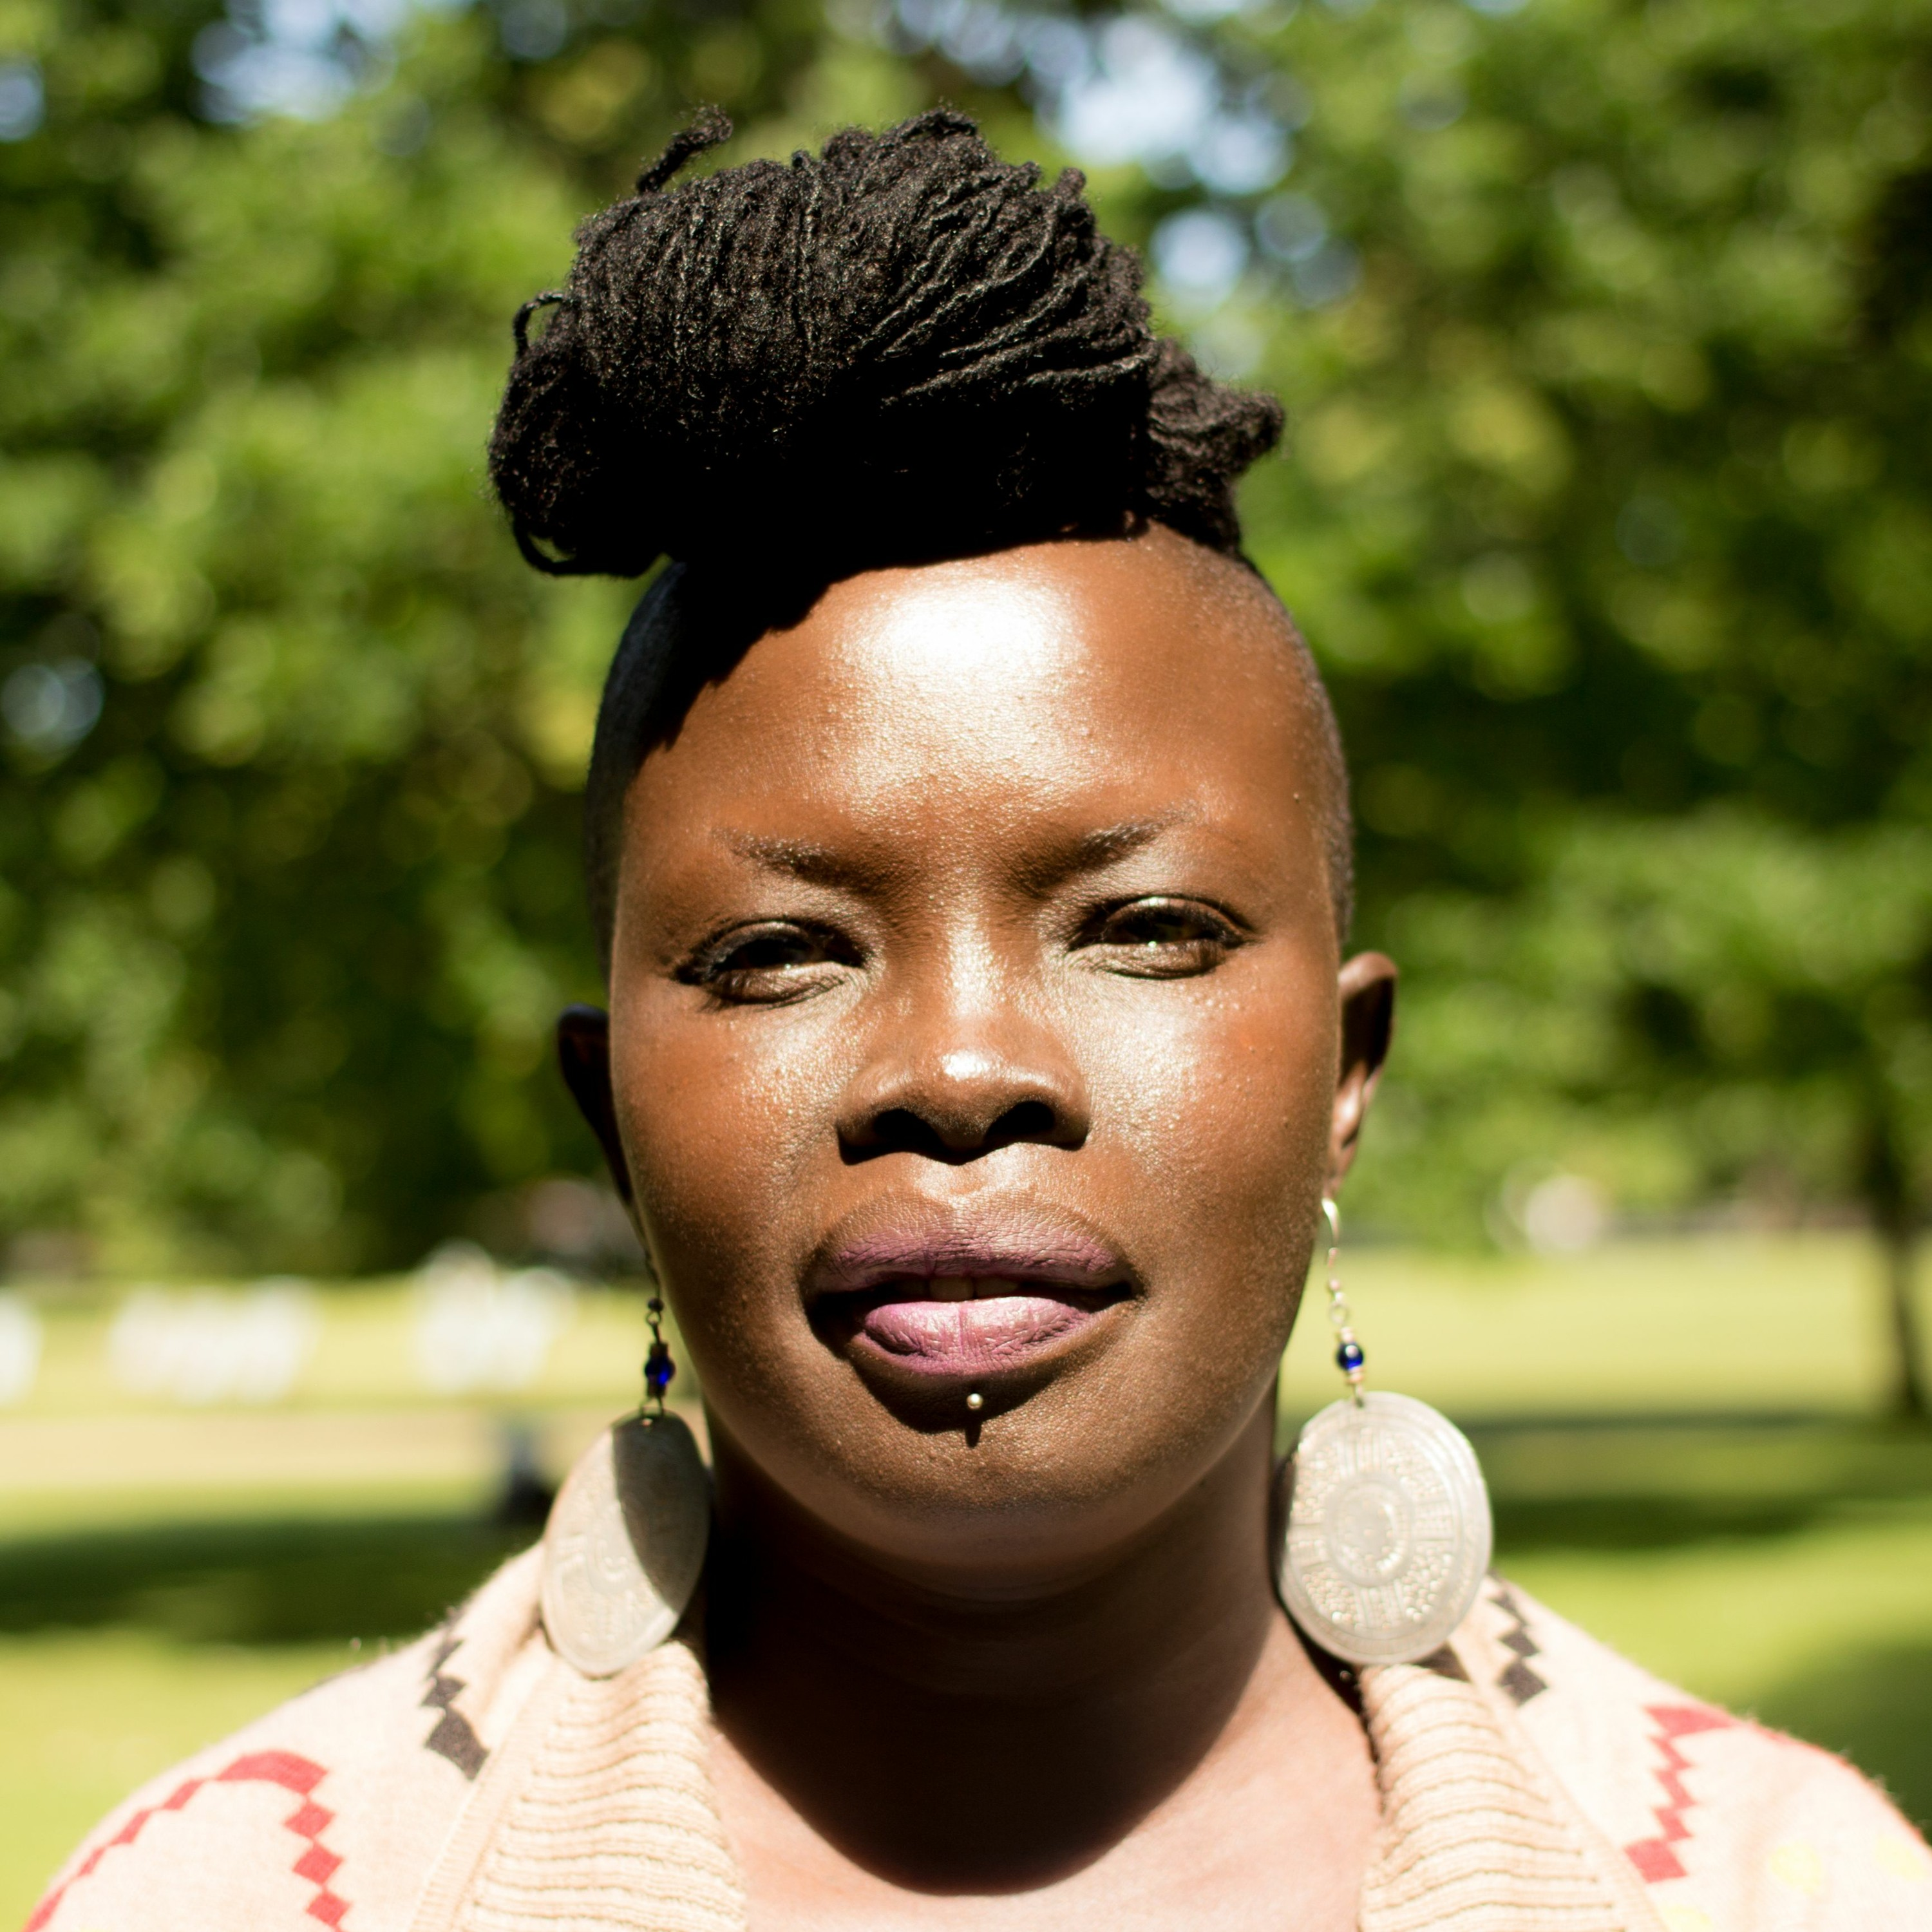 From refugee to MBE: How Akuja de Garang became a champion for girls' education in South Sudan